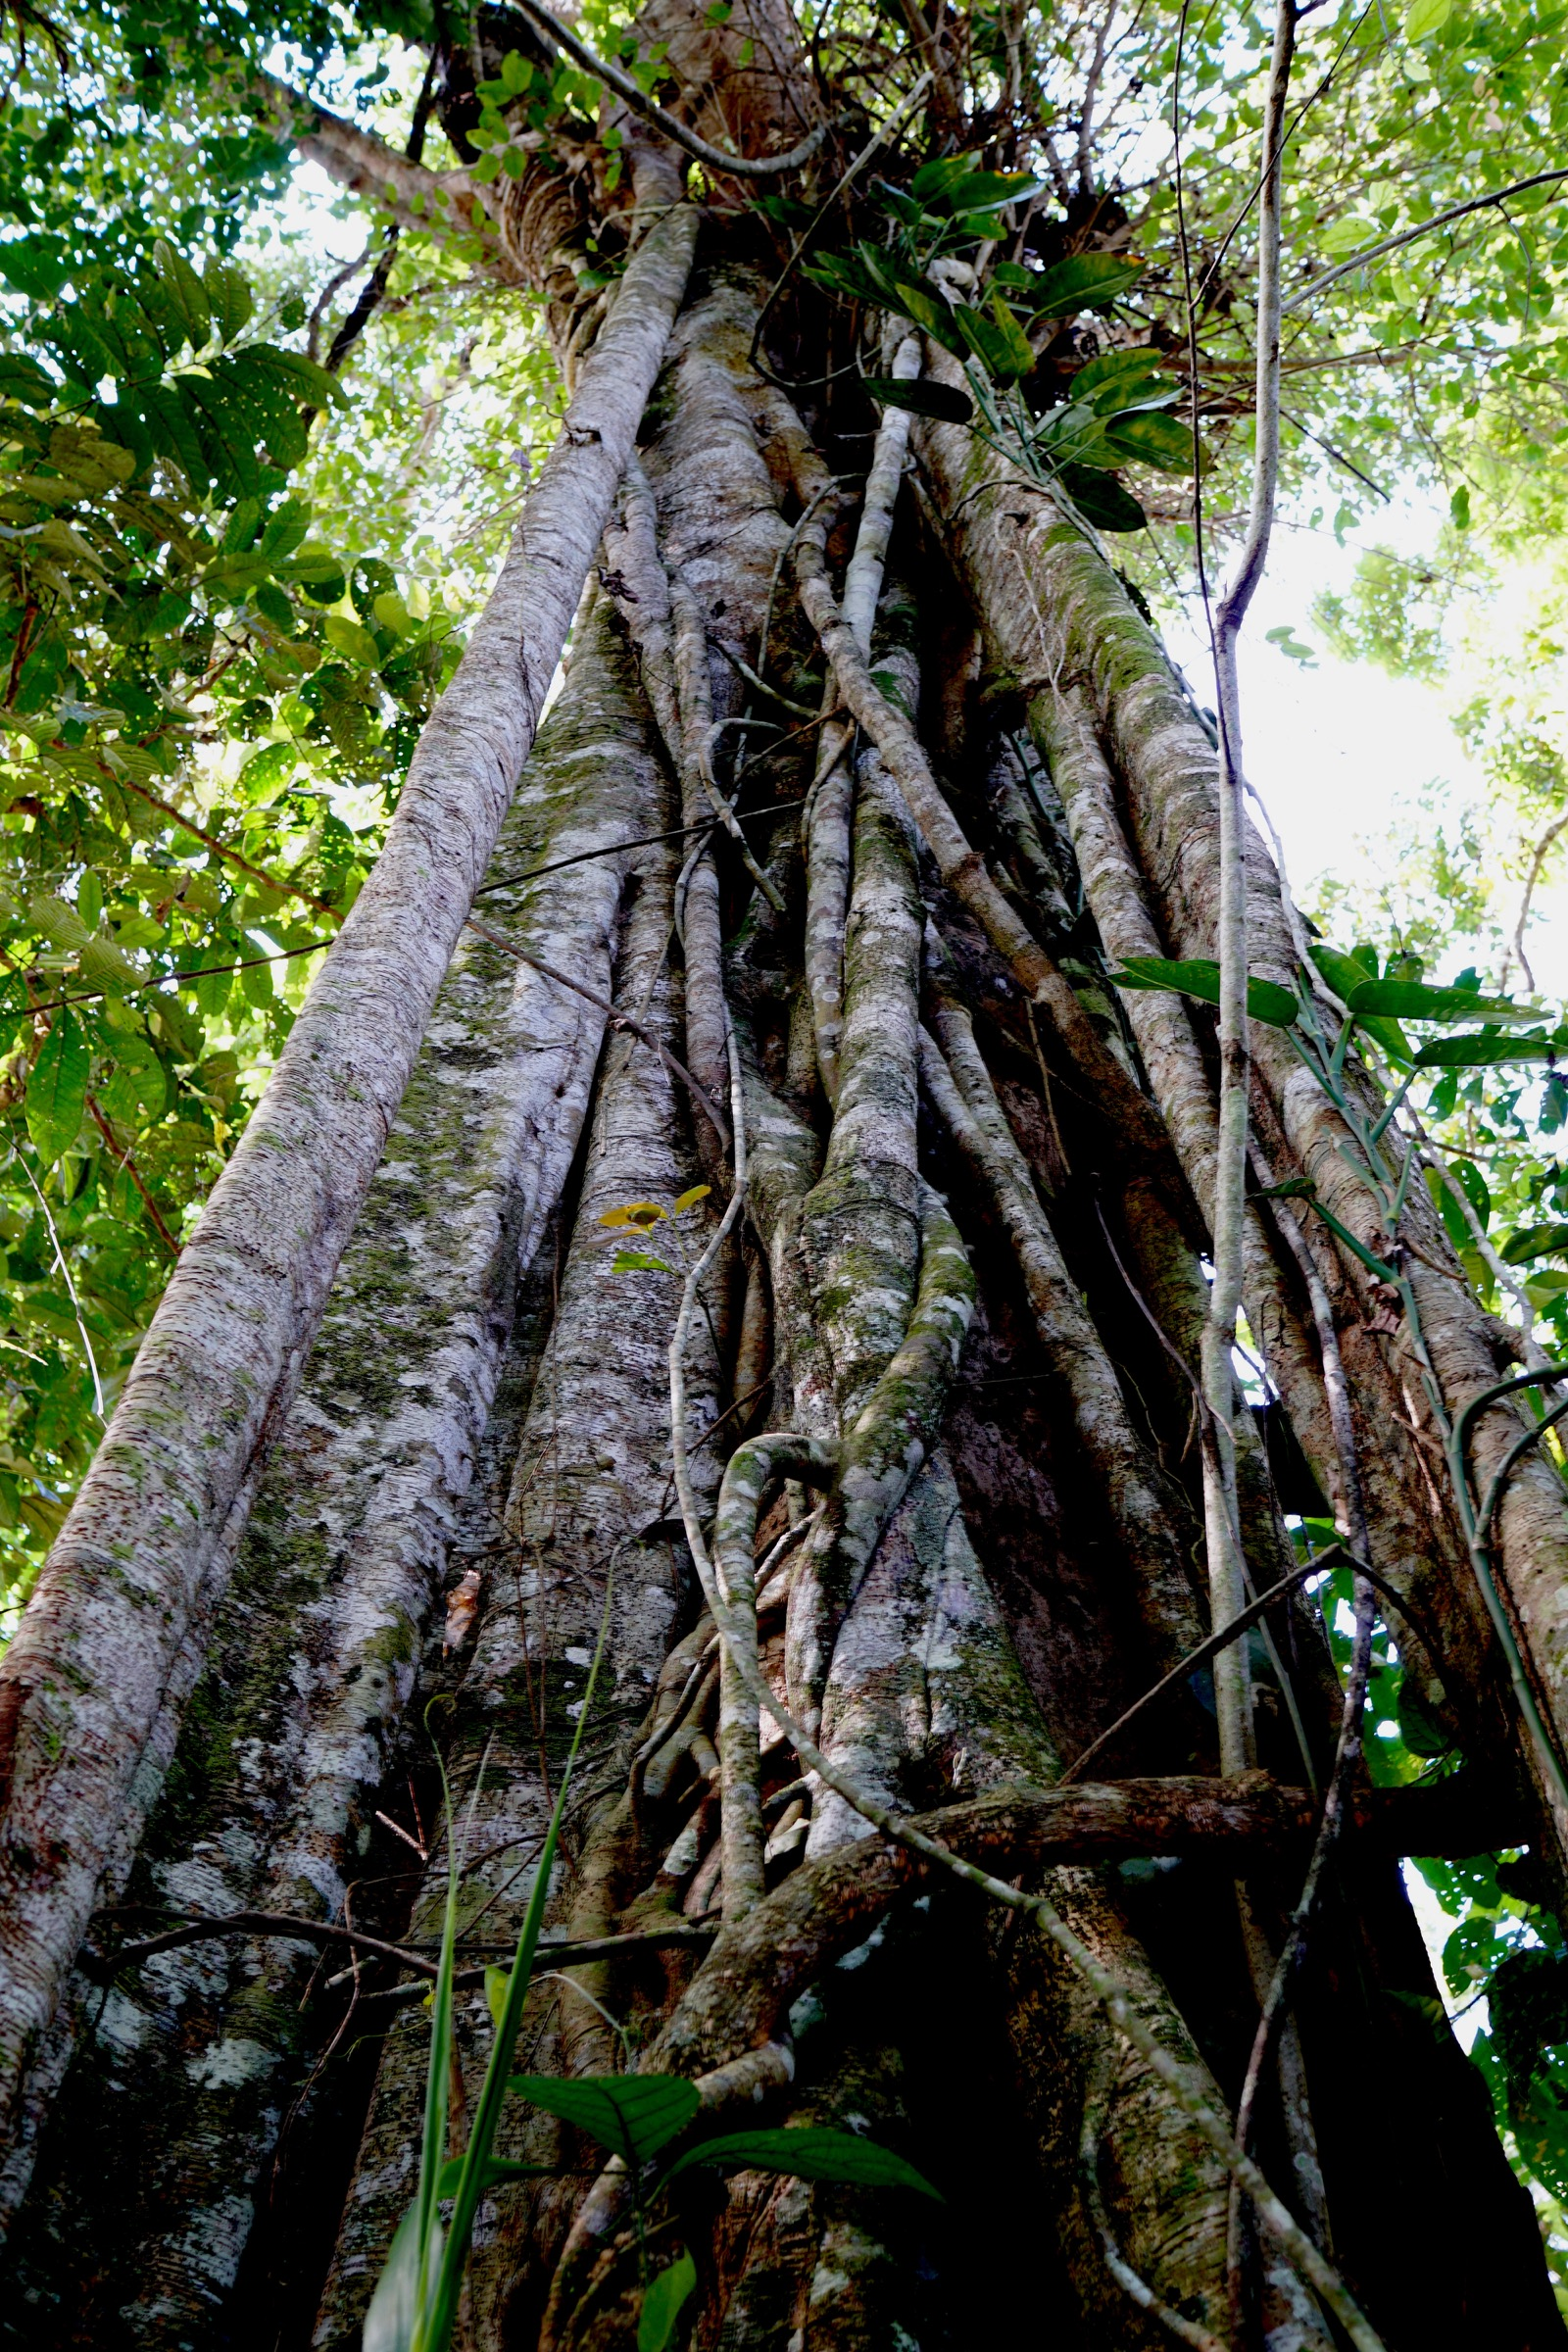 A strangler fig (Ficus sp.) envelops a tree in the rainforest of the Managalas Plateau. Photograph by Ethan Linck